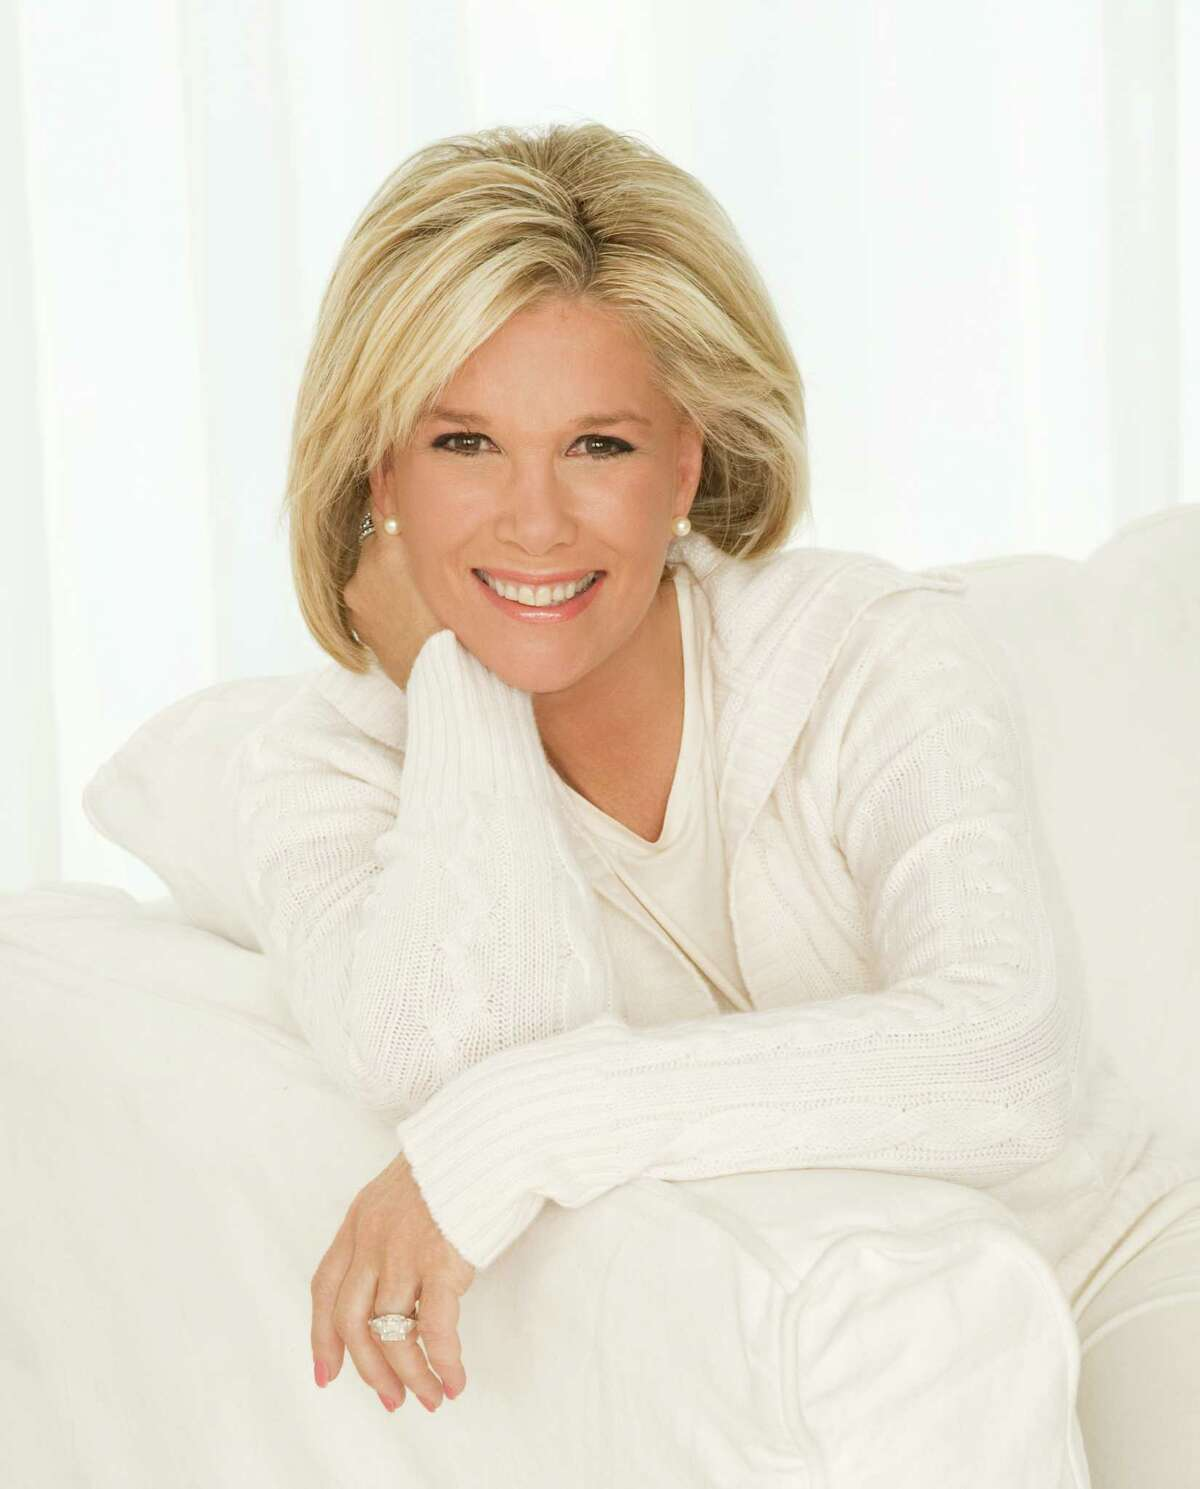 Joan Lunden announced this week that she has breast cancer which was discovered after she has an untrasound.